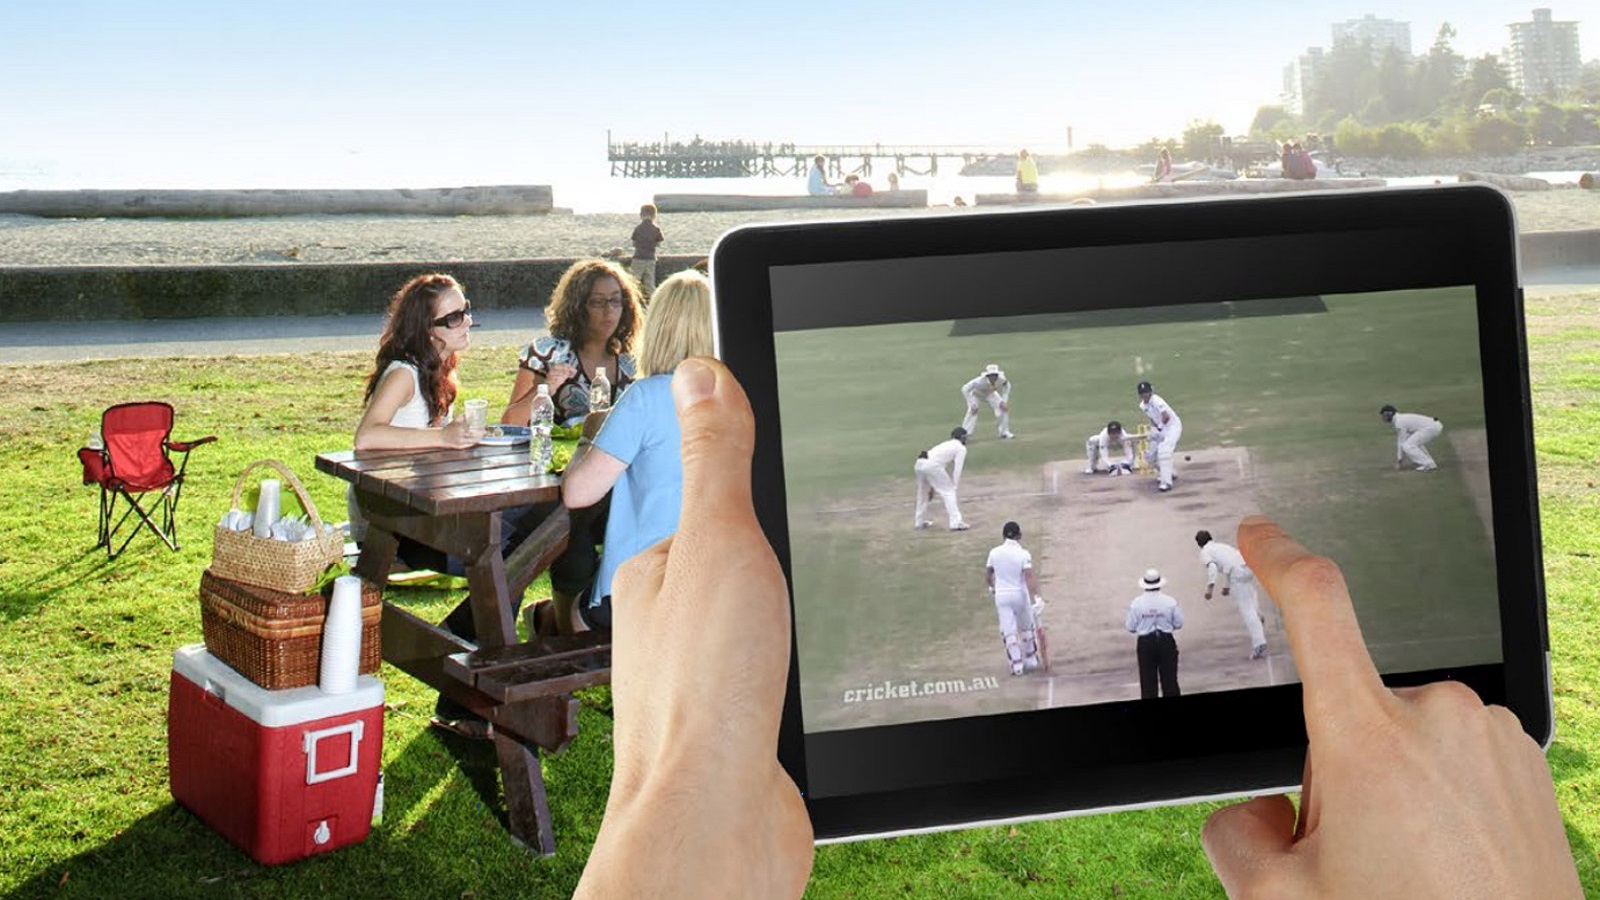 Live streaming service helps Cricket Australia delight fans